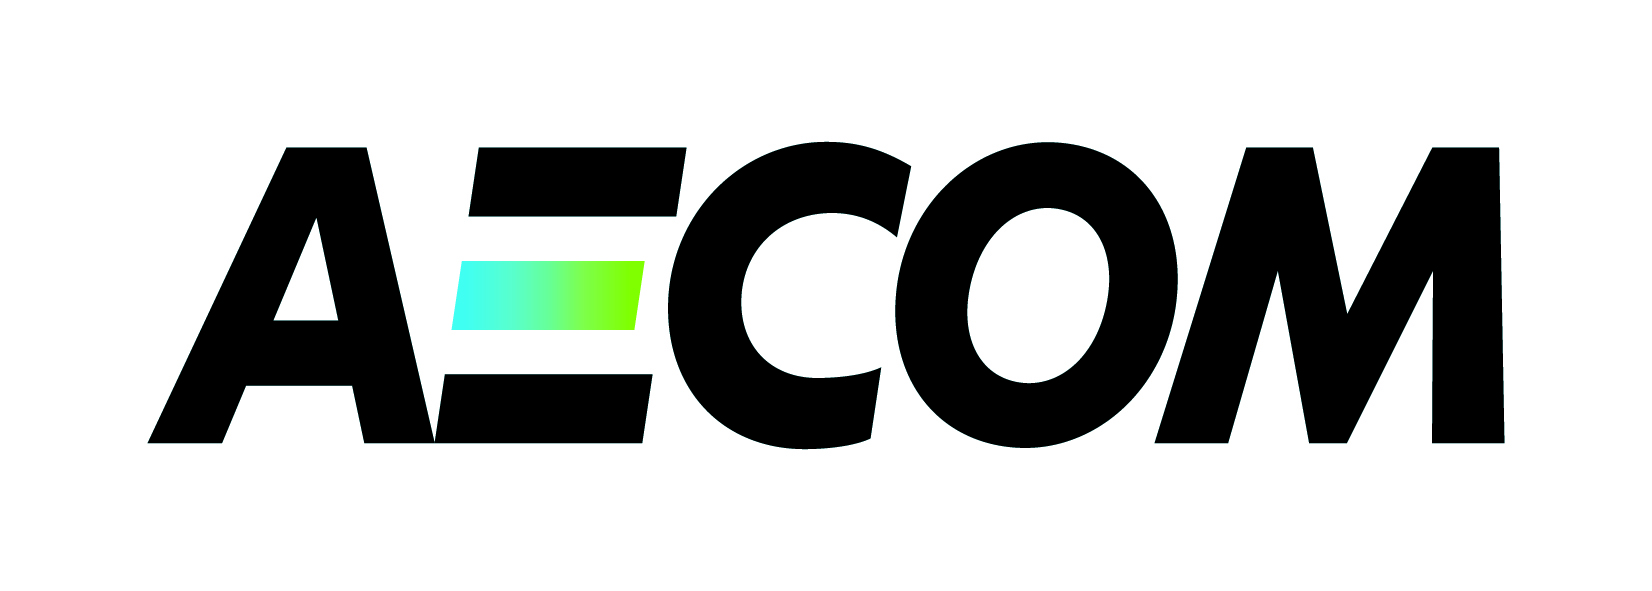 AECOM_color_cmyk.jpg